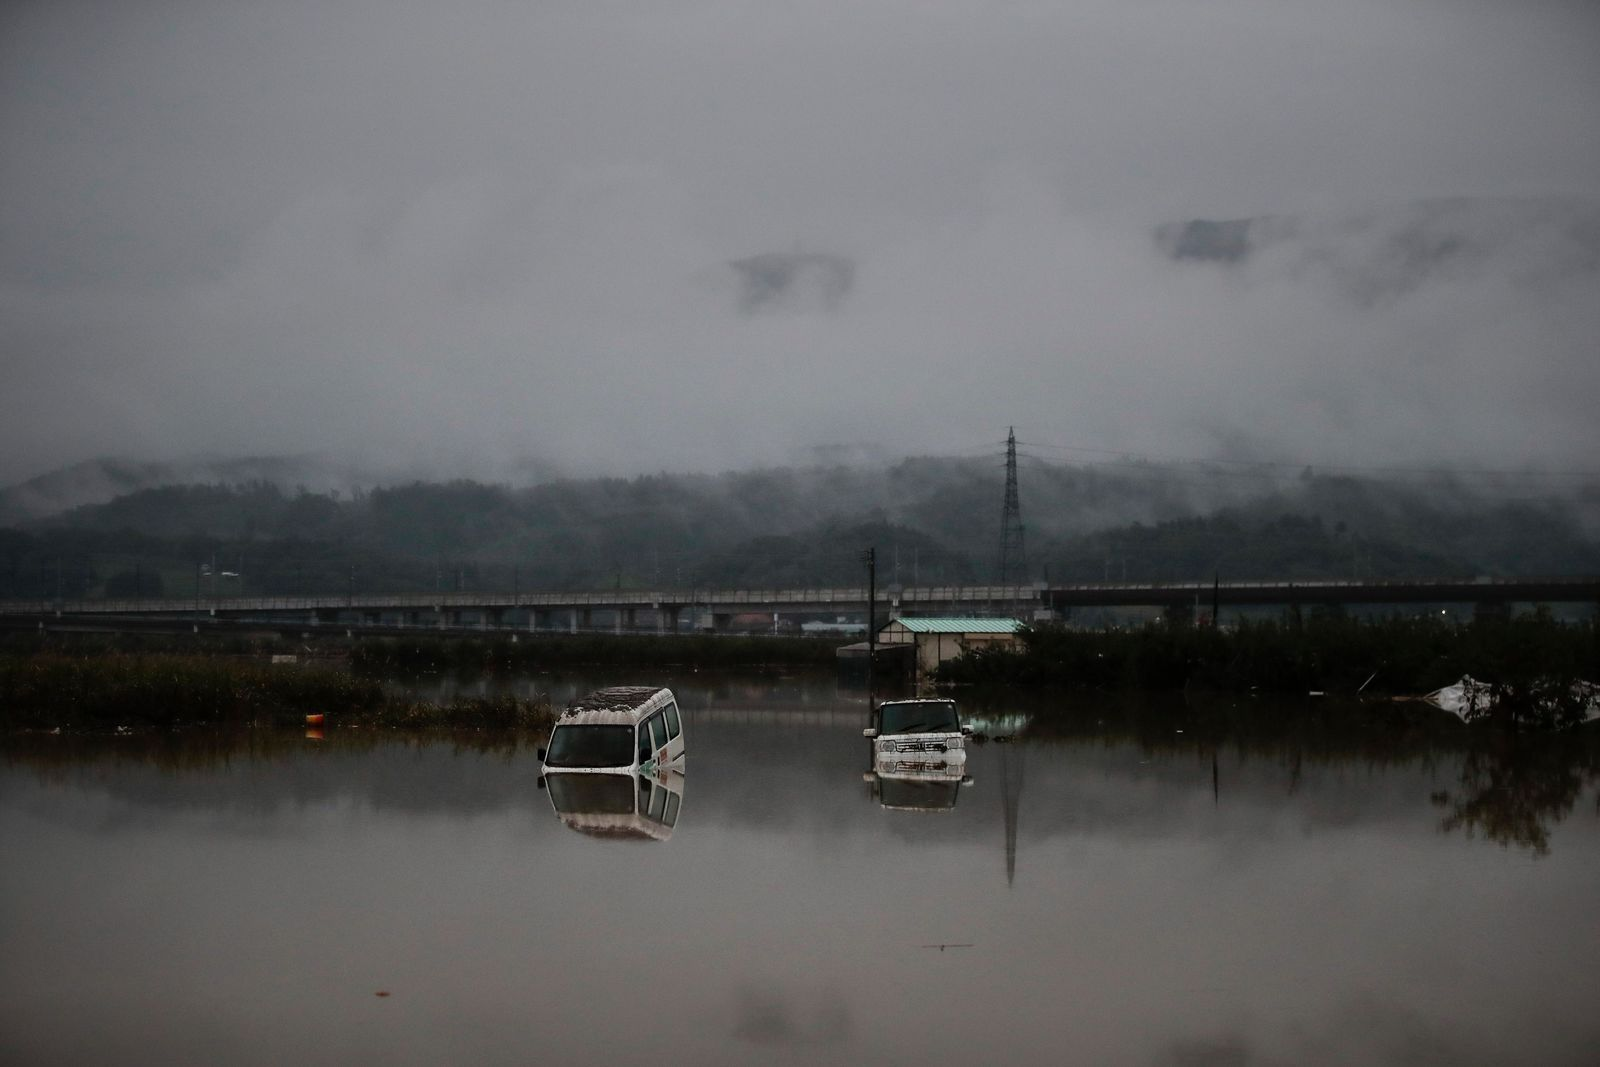 Two vehicles are submerged in floodwaters Monday, Oct. 14, 2019, in Hoyasu, Japan. . (AP Photo/Jae C. Hong)